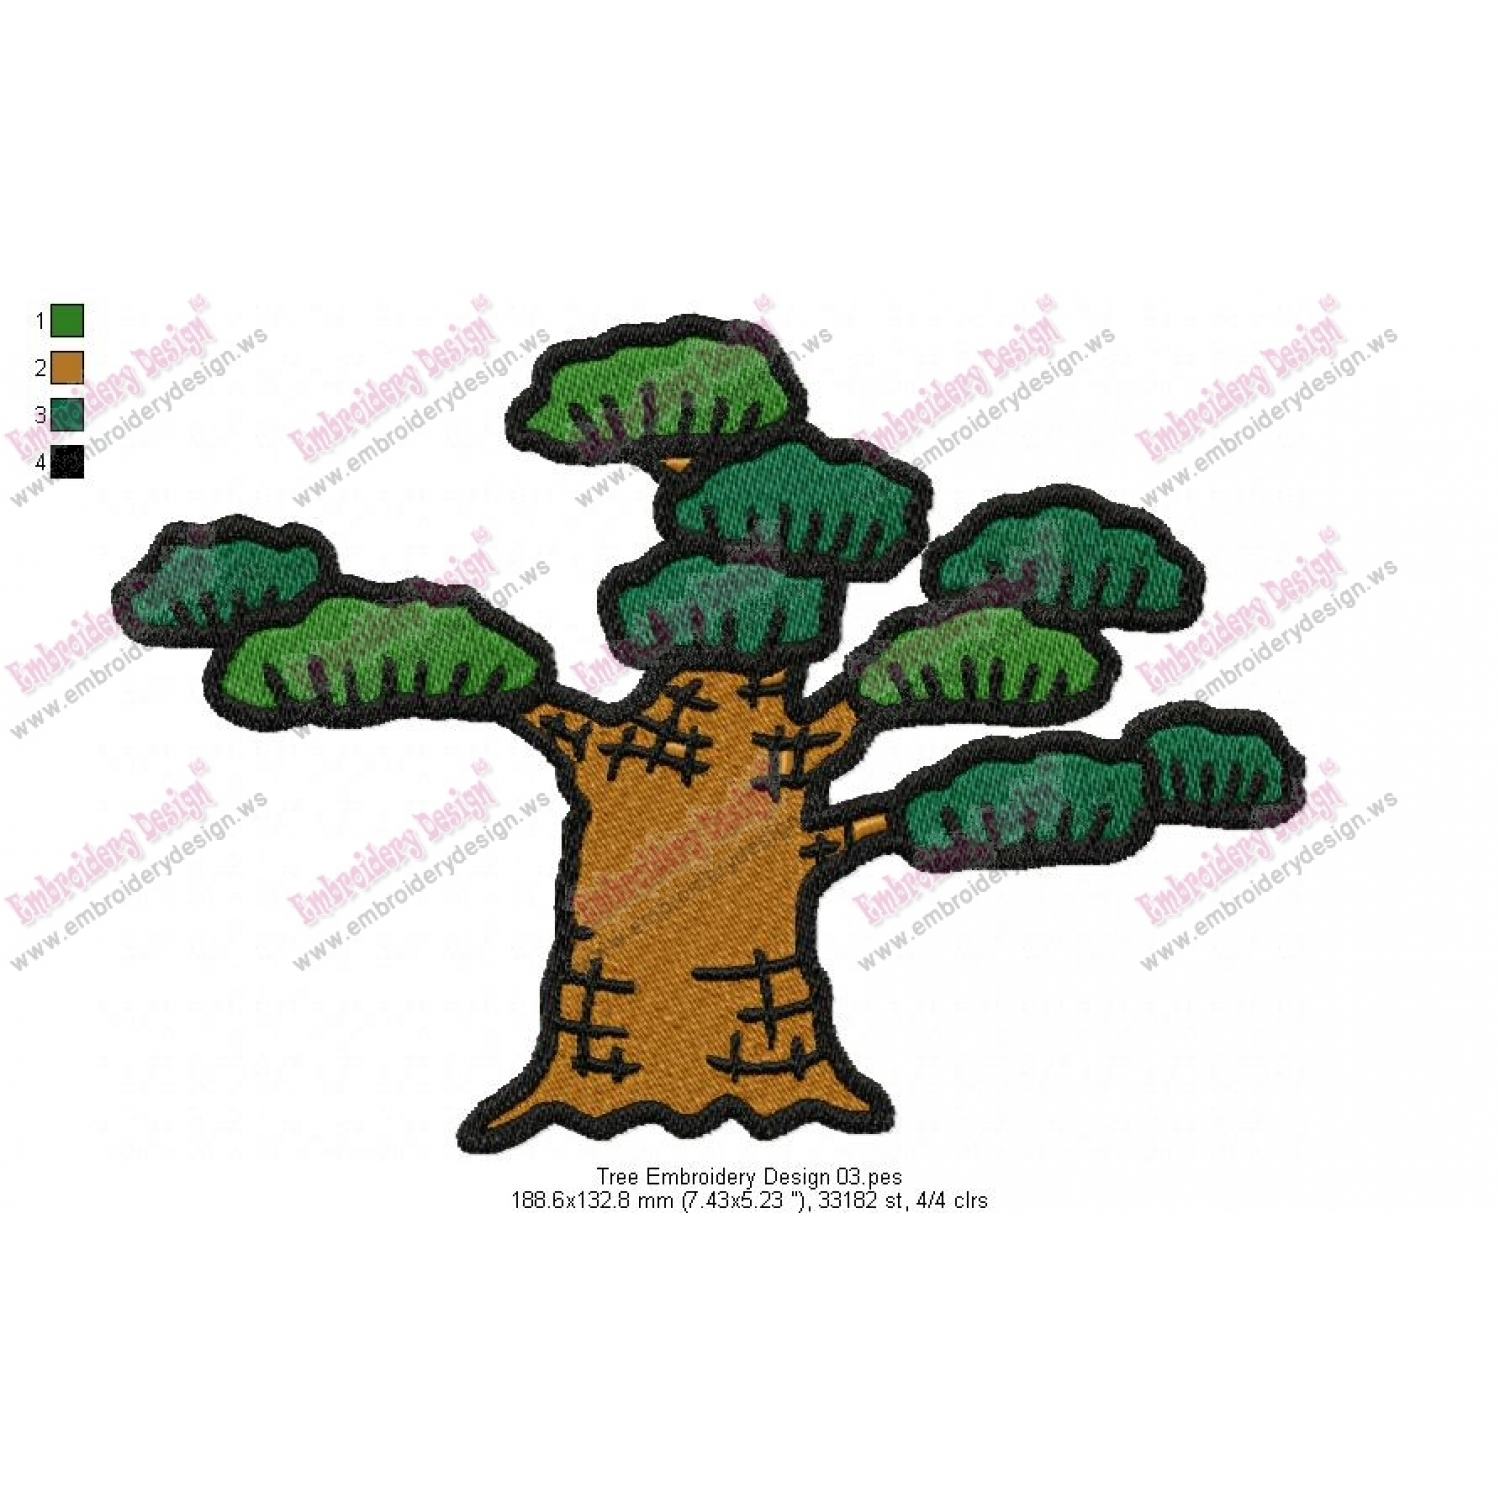 Tree embroidery pattern patterns gallery tree online cross stitch patterns bankloansurffo Choice Image